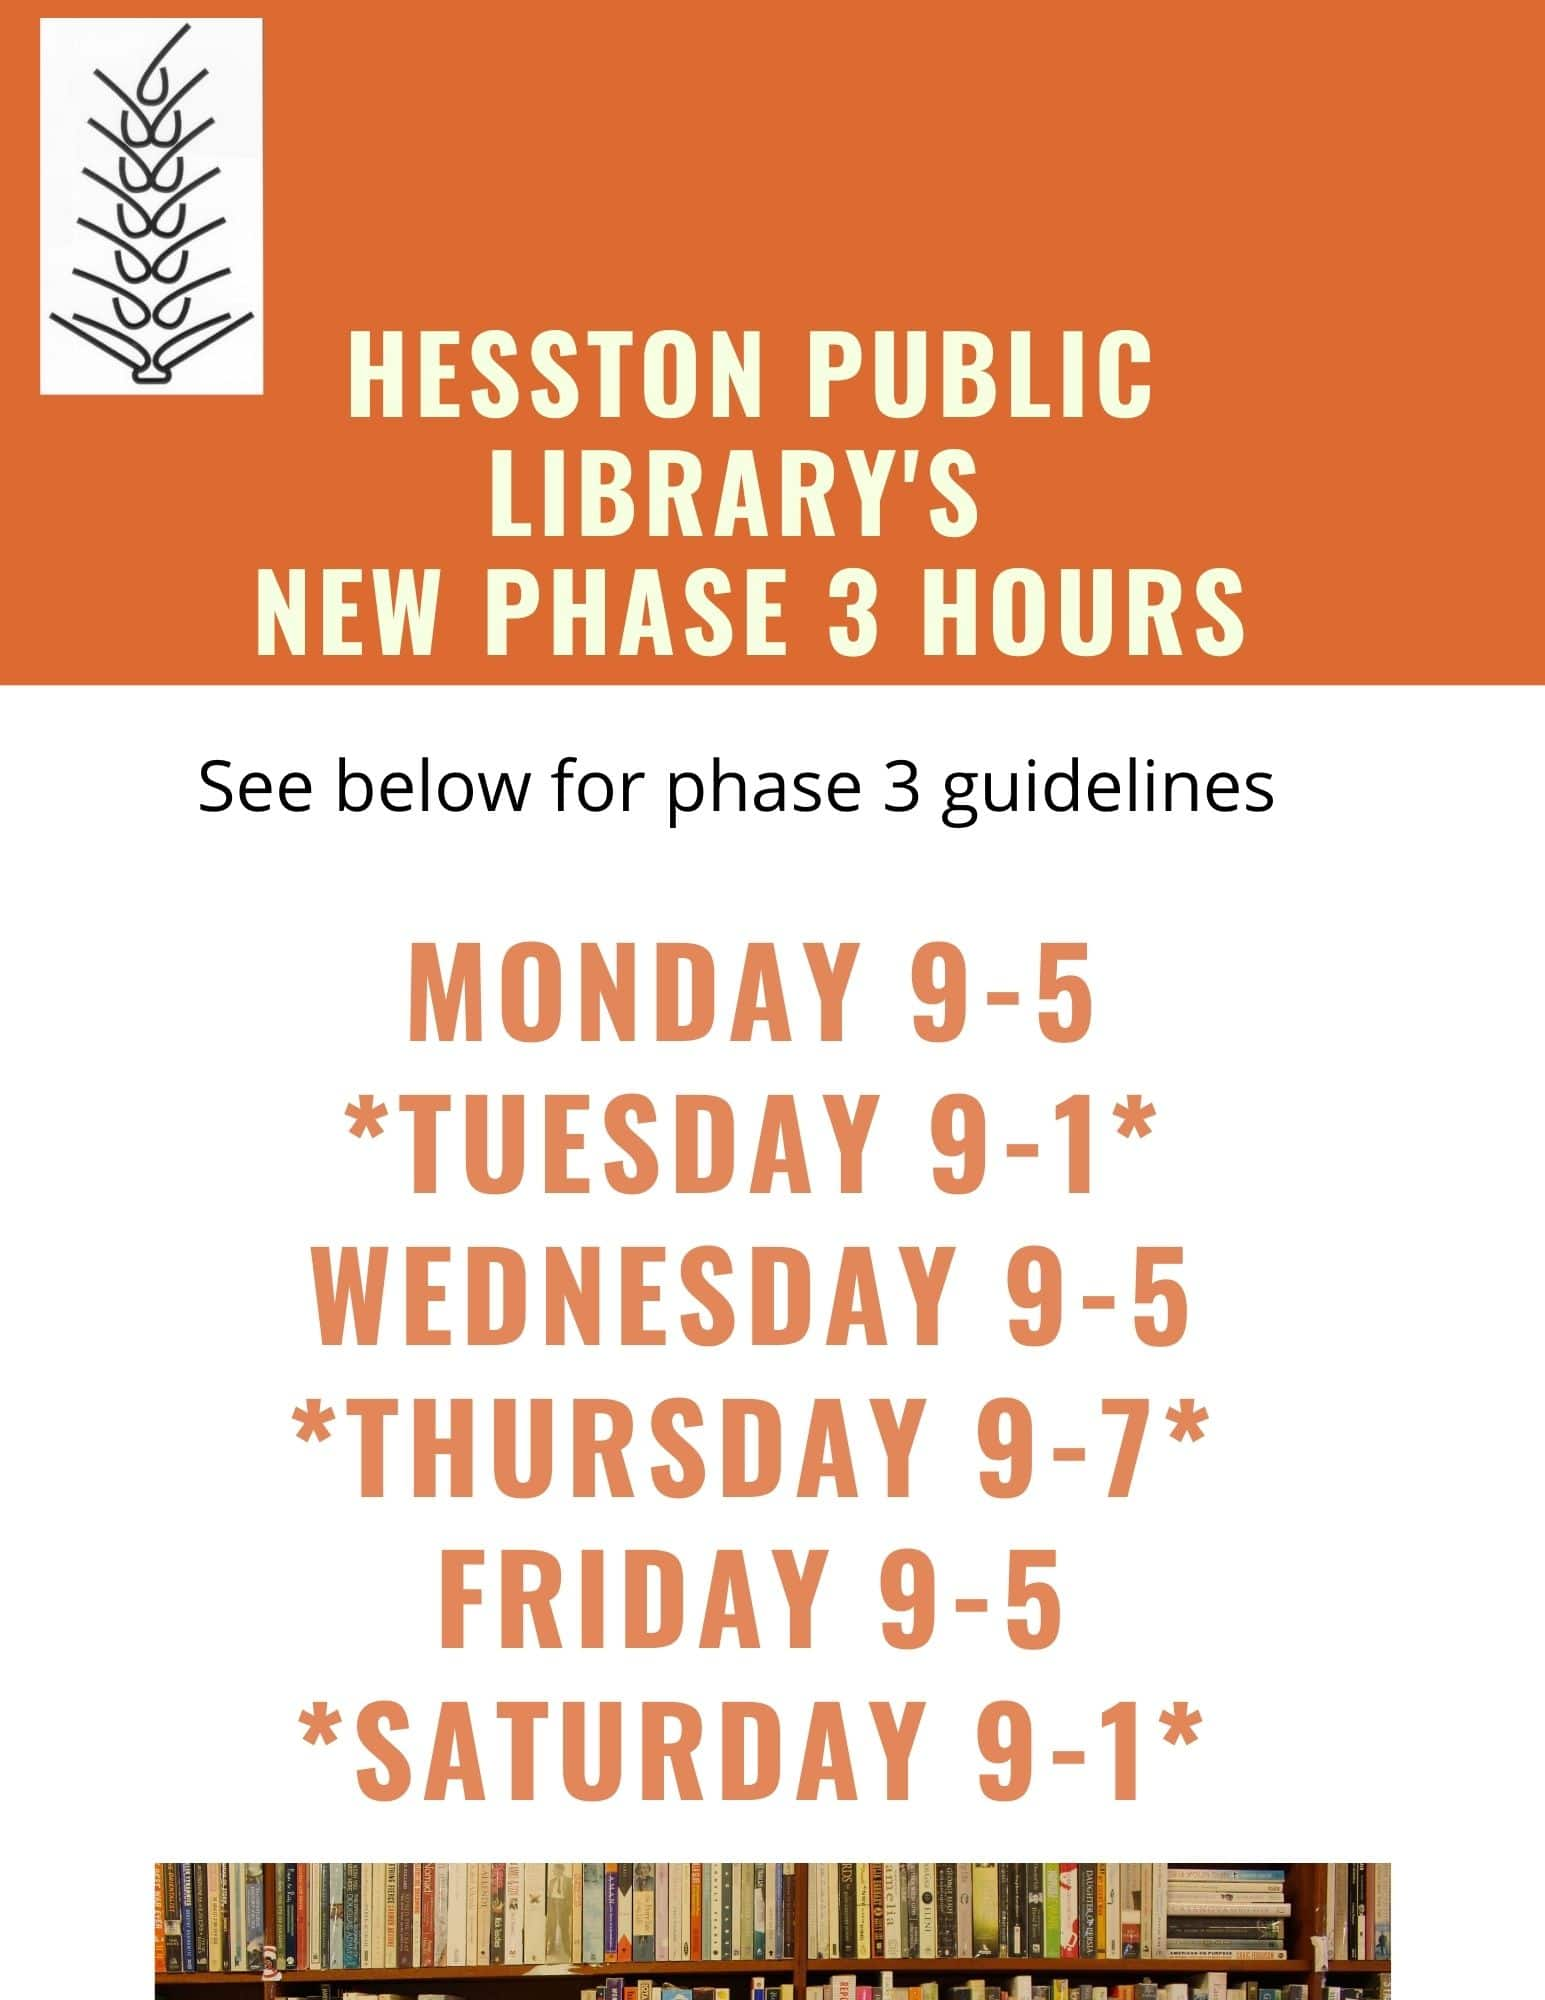 PHASE 3 WITH NEW HOURS